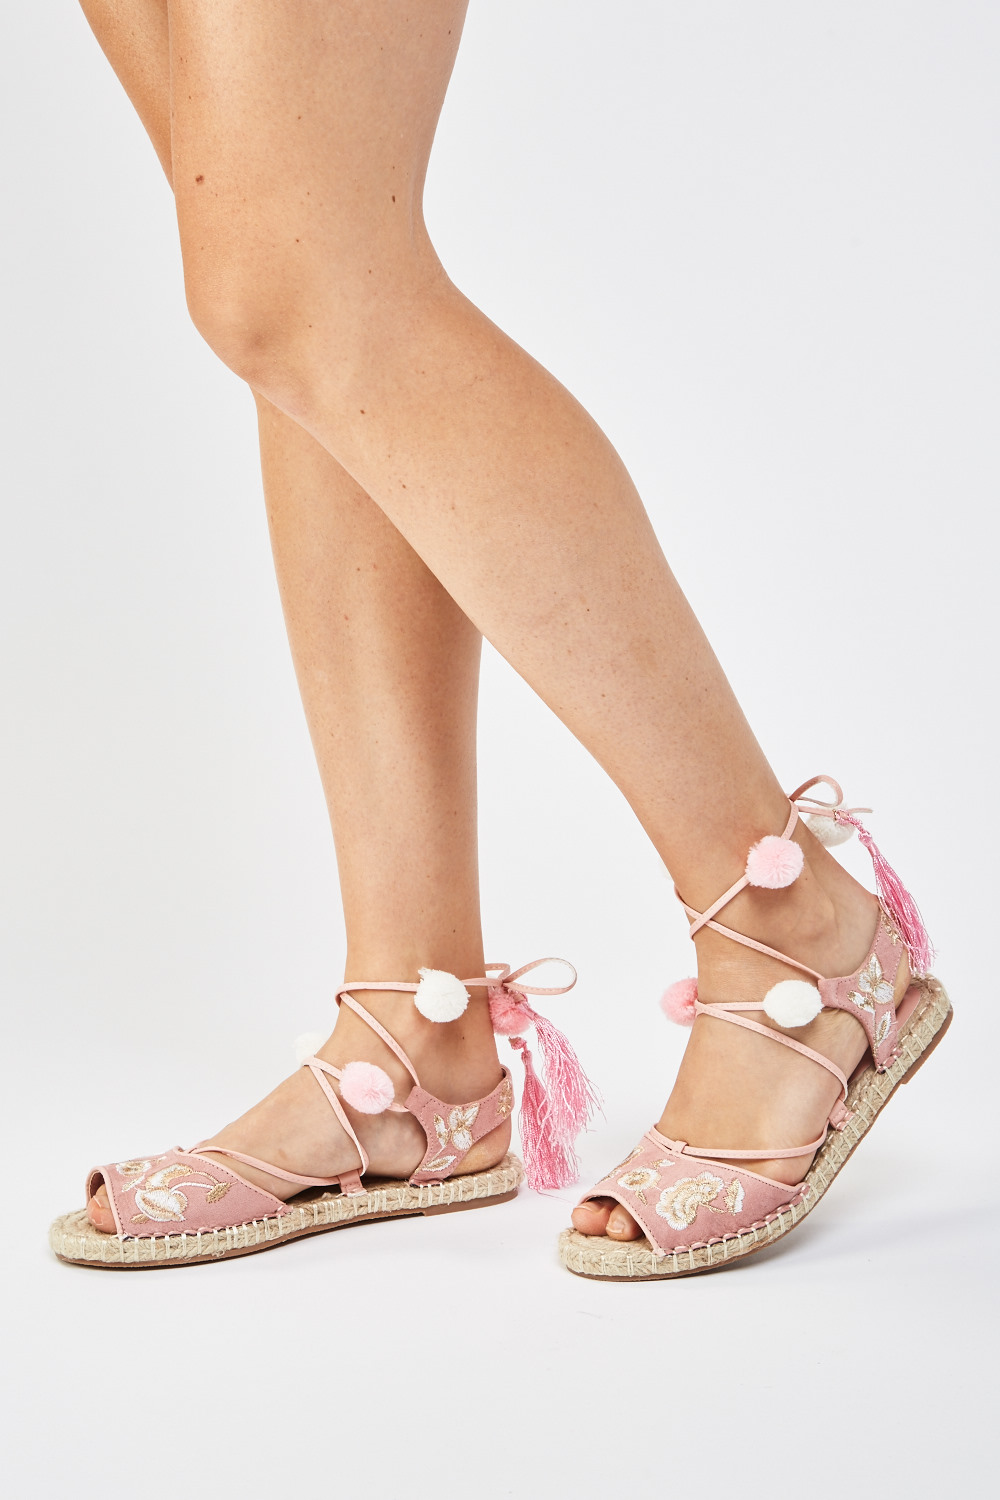 d325b870dcdb Embroidered Lace Up Espadrilles - Black or Old Pink - Just £5